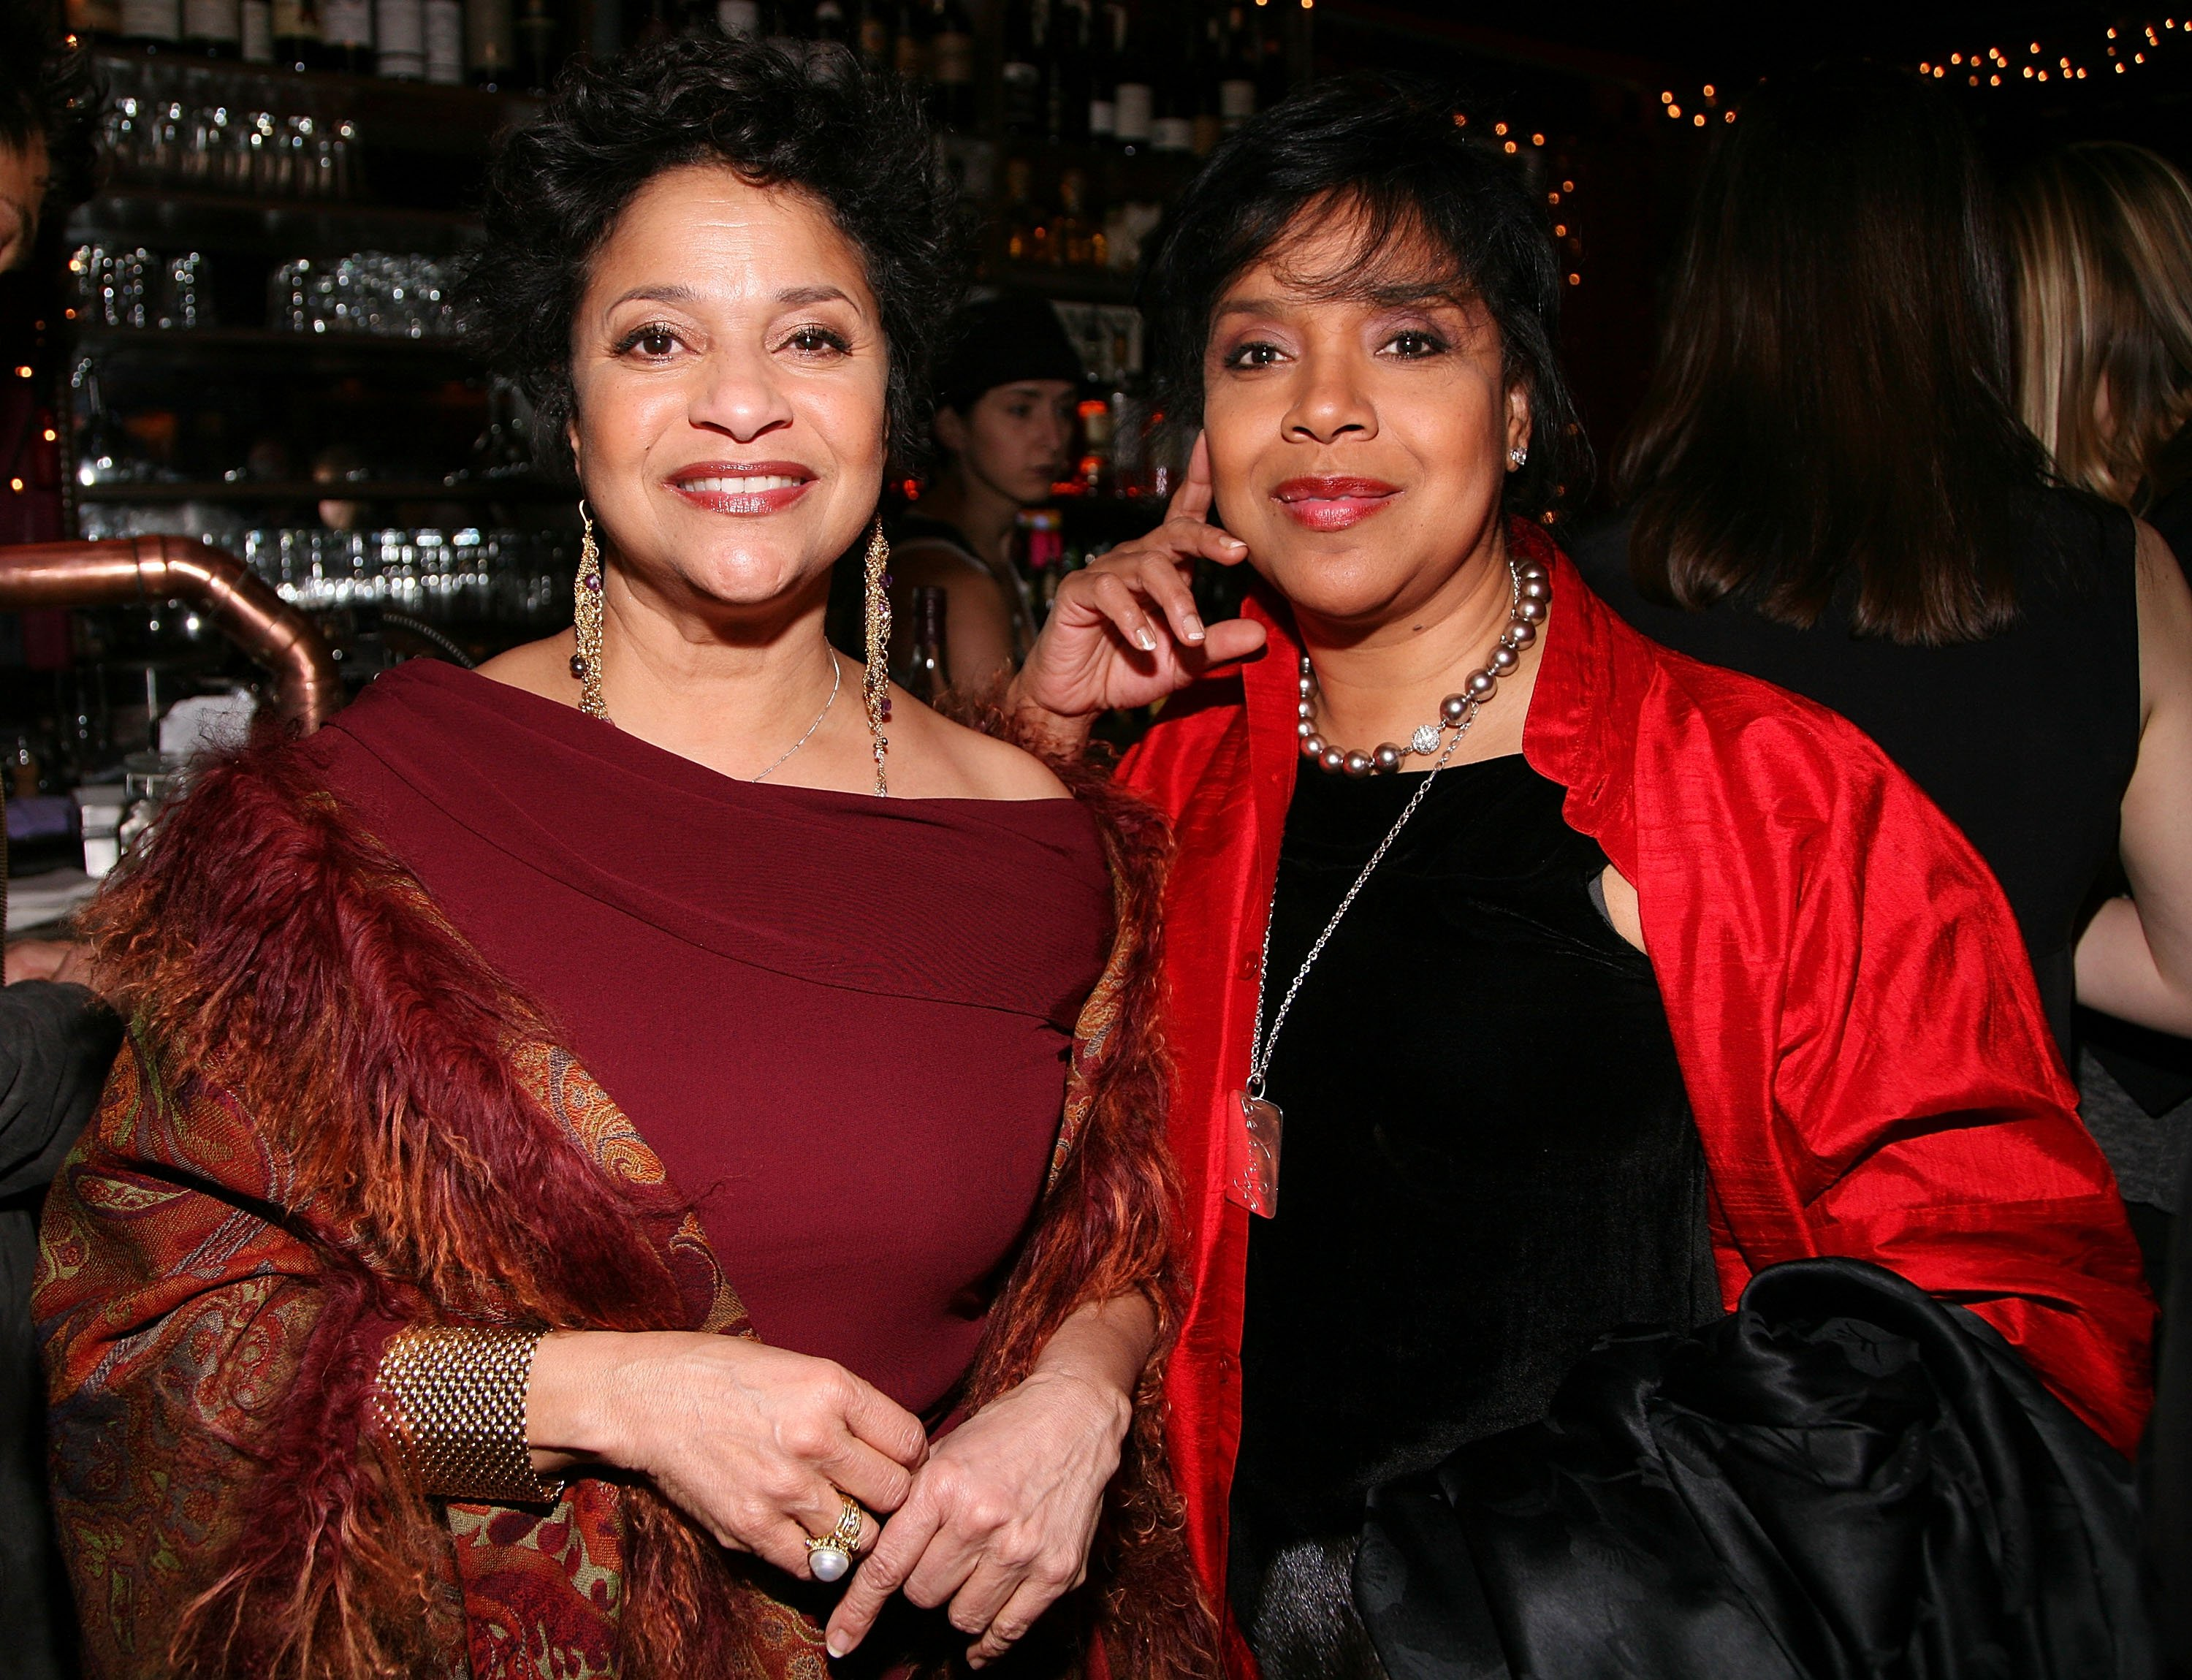 Debbie Allen and Phylicia Rashad pictured at the New York Magazine Oscar Viewing Party on February 24, 2008 in New York City.   Source: Getty Images